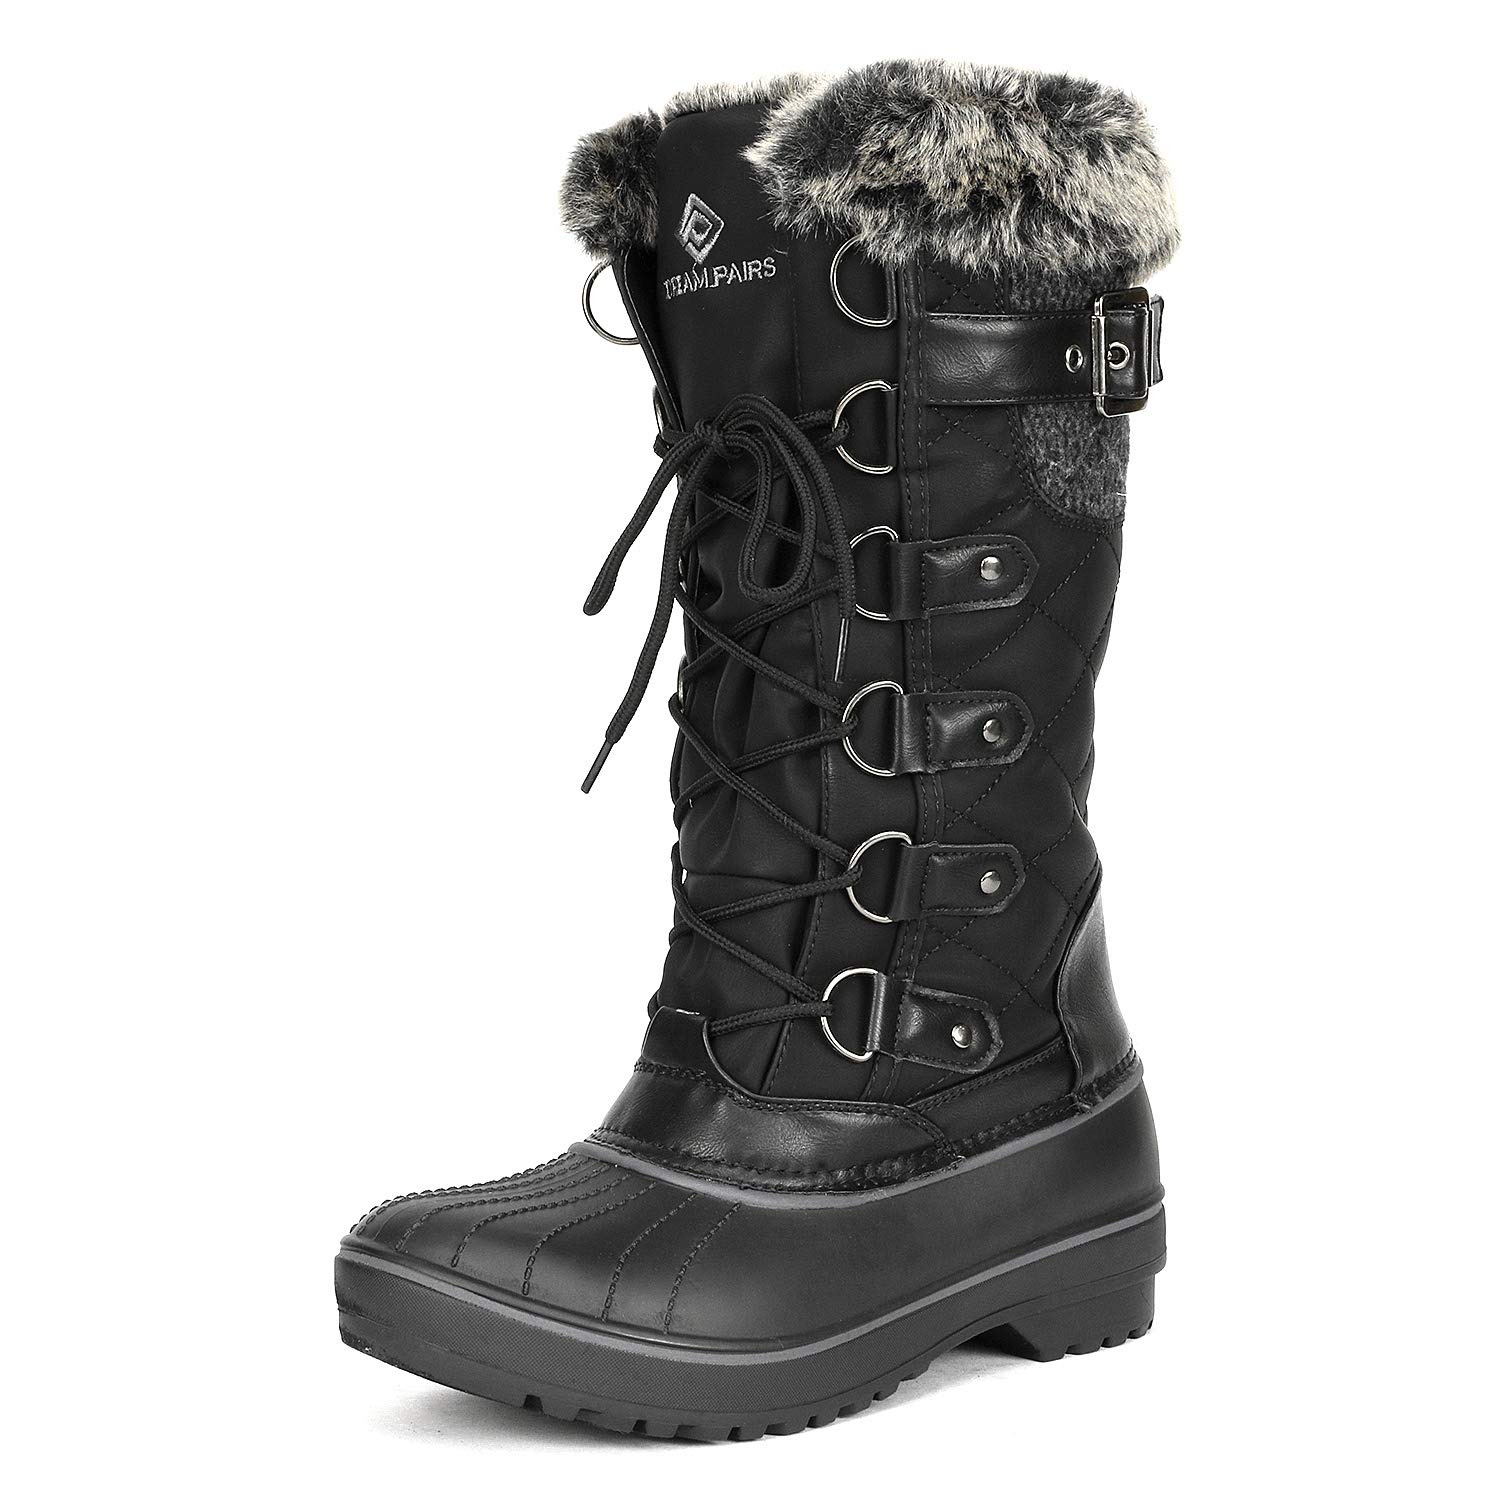 39ac04c90b4 DREAM PAIRS Women's DP Warm Faux Fur Lined Mid Calf Winter Snow Boots